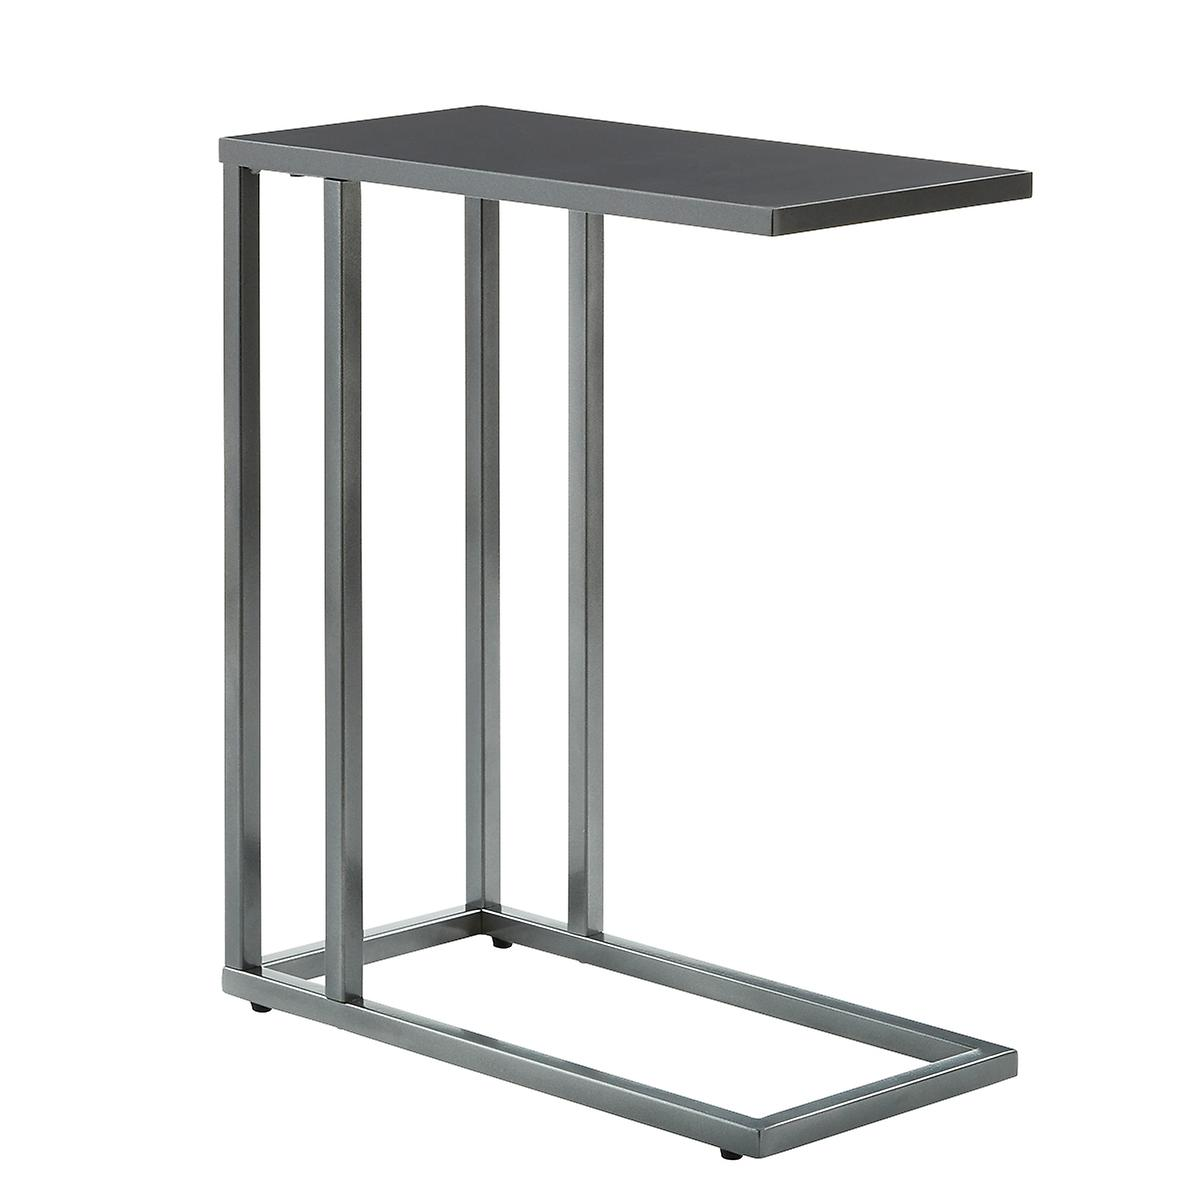 Anthracite C Table The Container